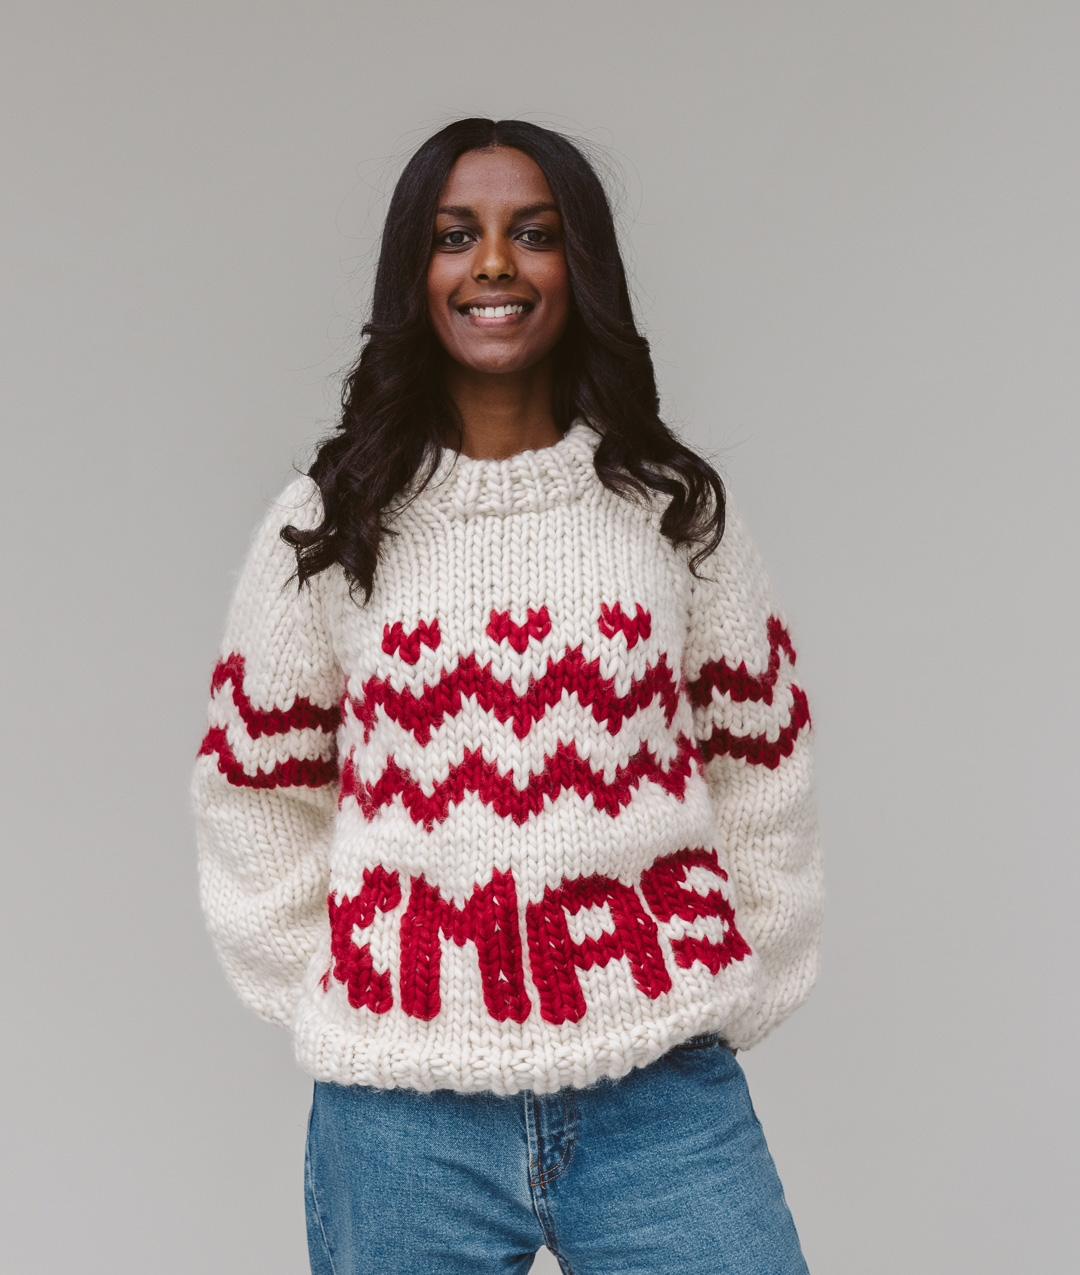 Sweaters and Tops - Wool - MERRY XMAS JUMPER - FOR HER  - 1